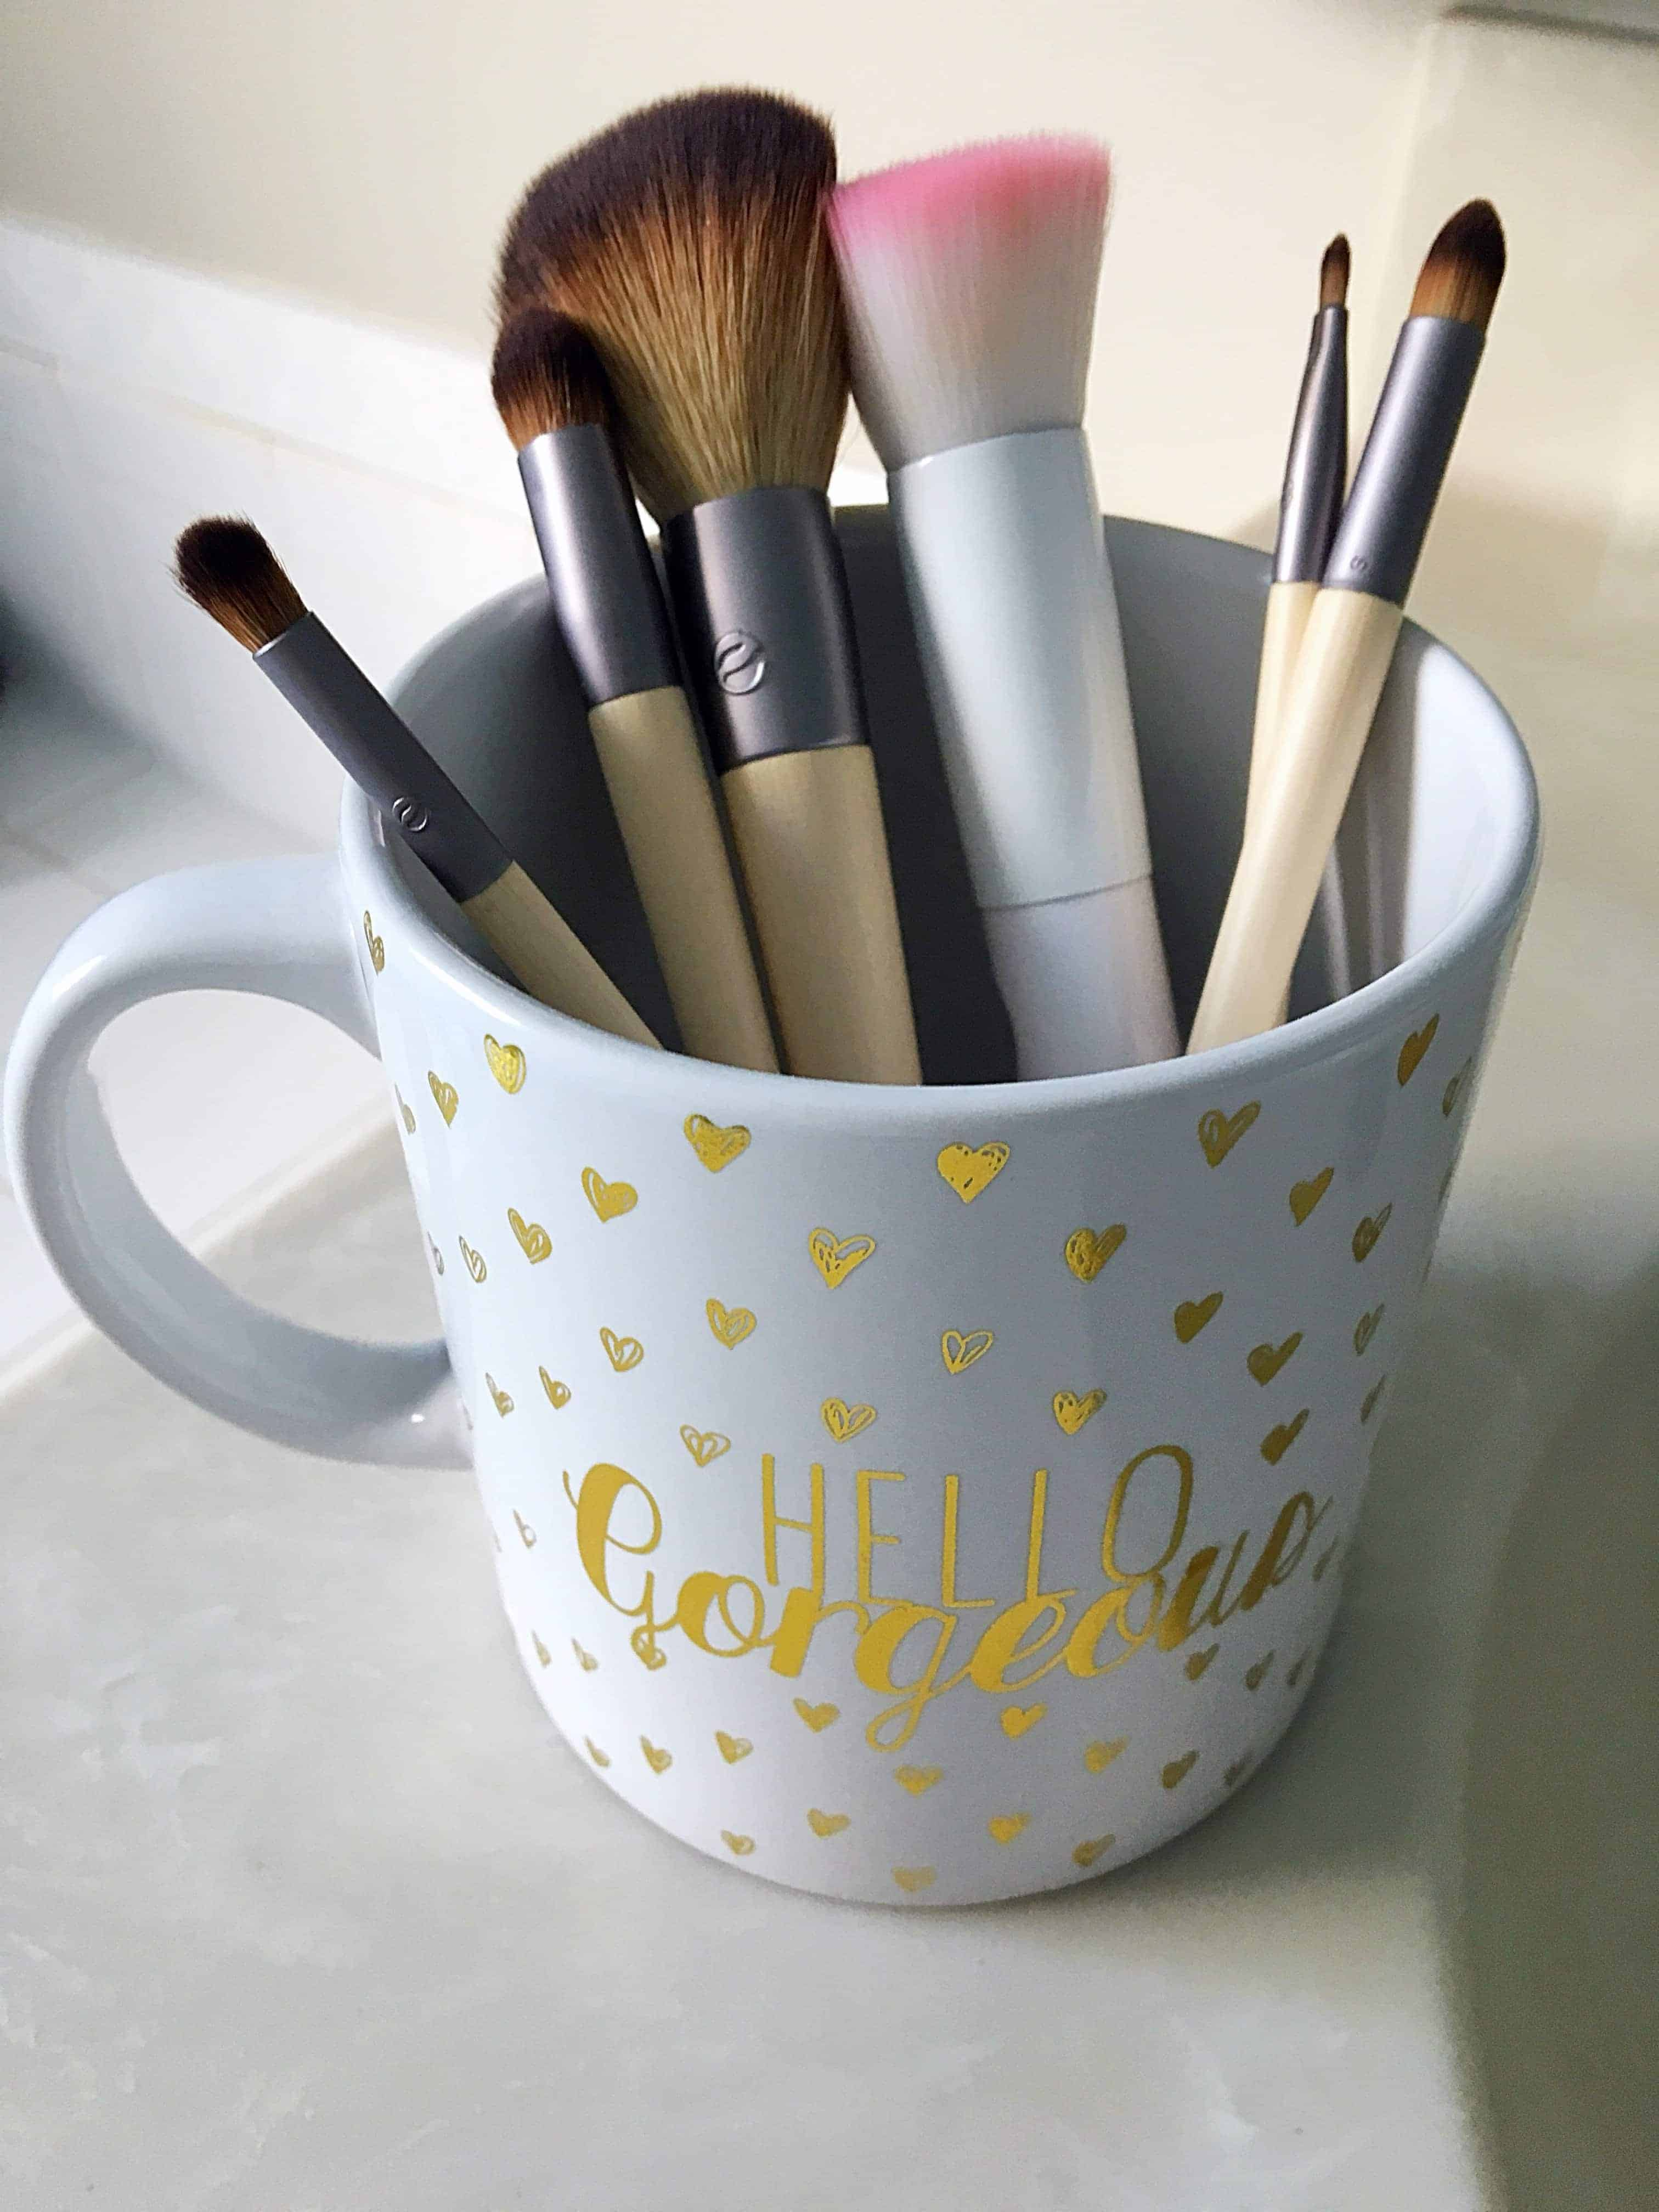 How To Best Clean Makeup Brushes Kindly Unspoken